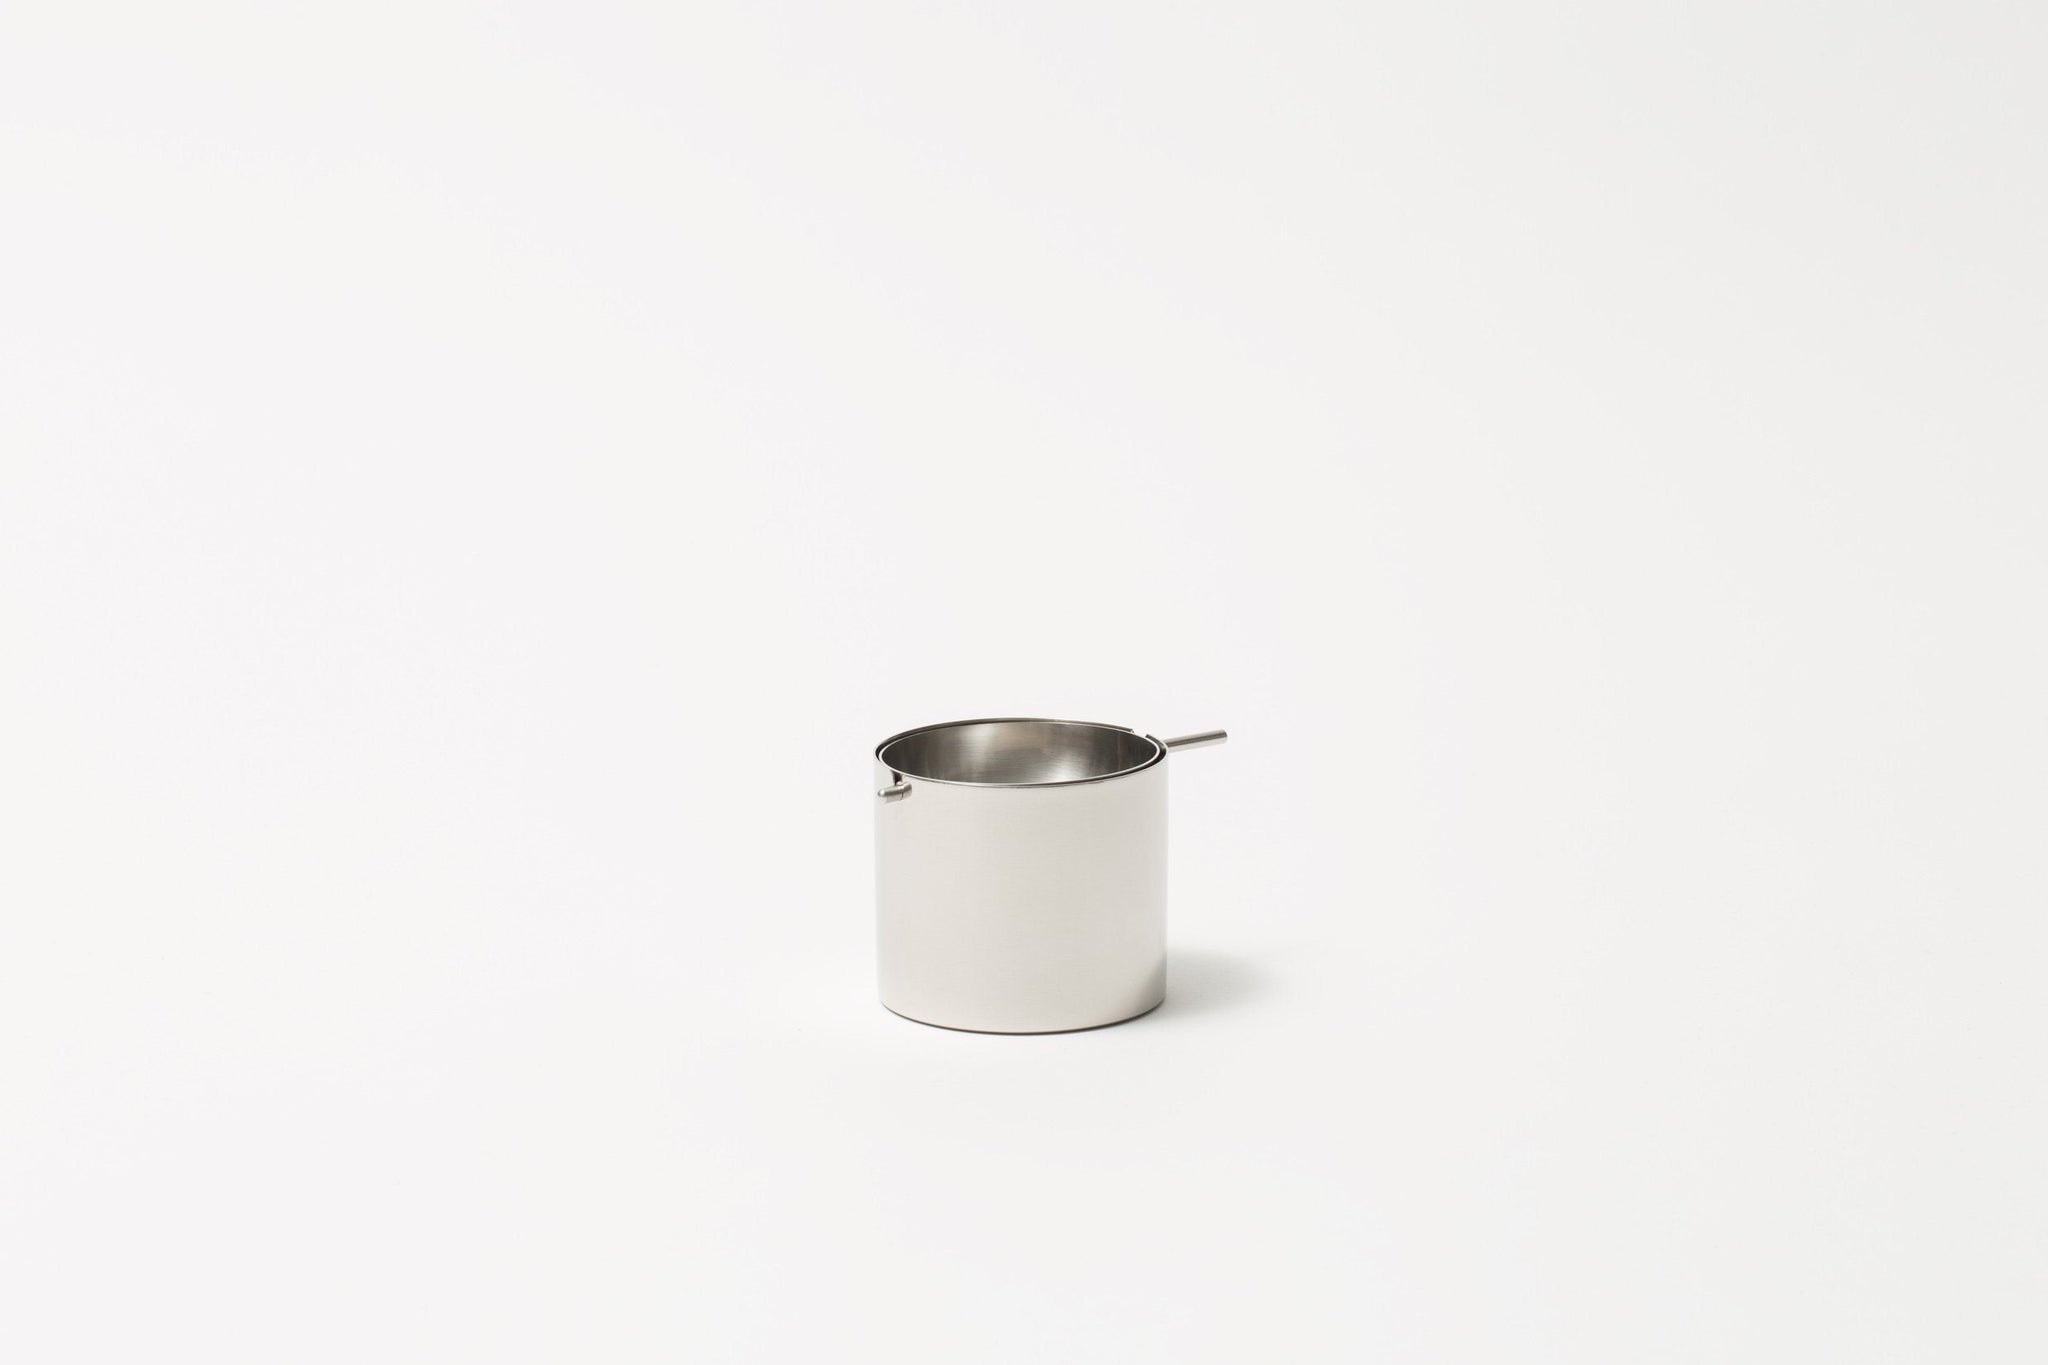 Arne Jacobsen - Revolving Ashtray